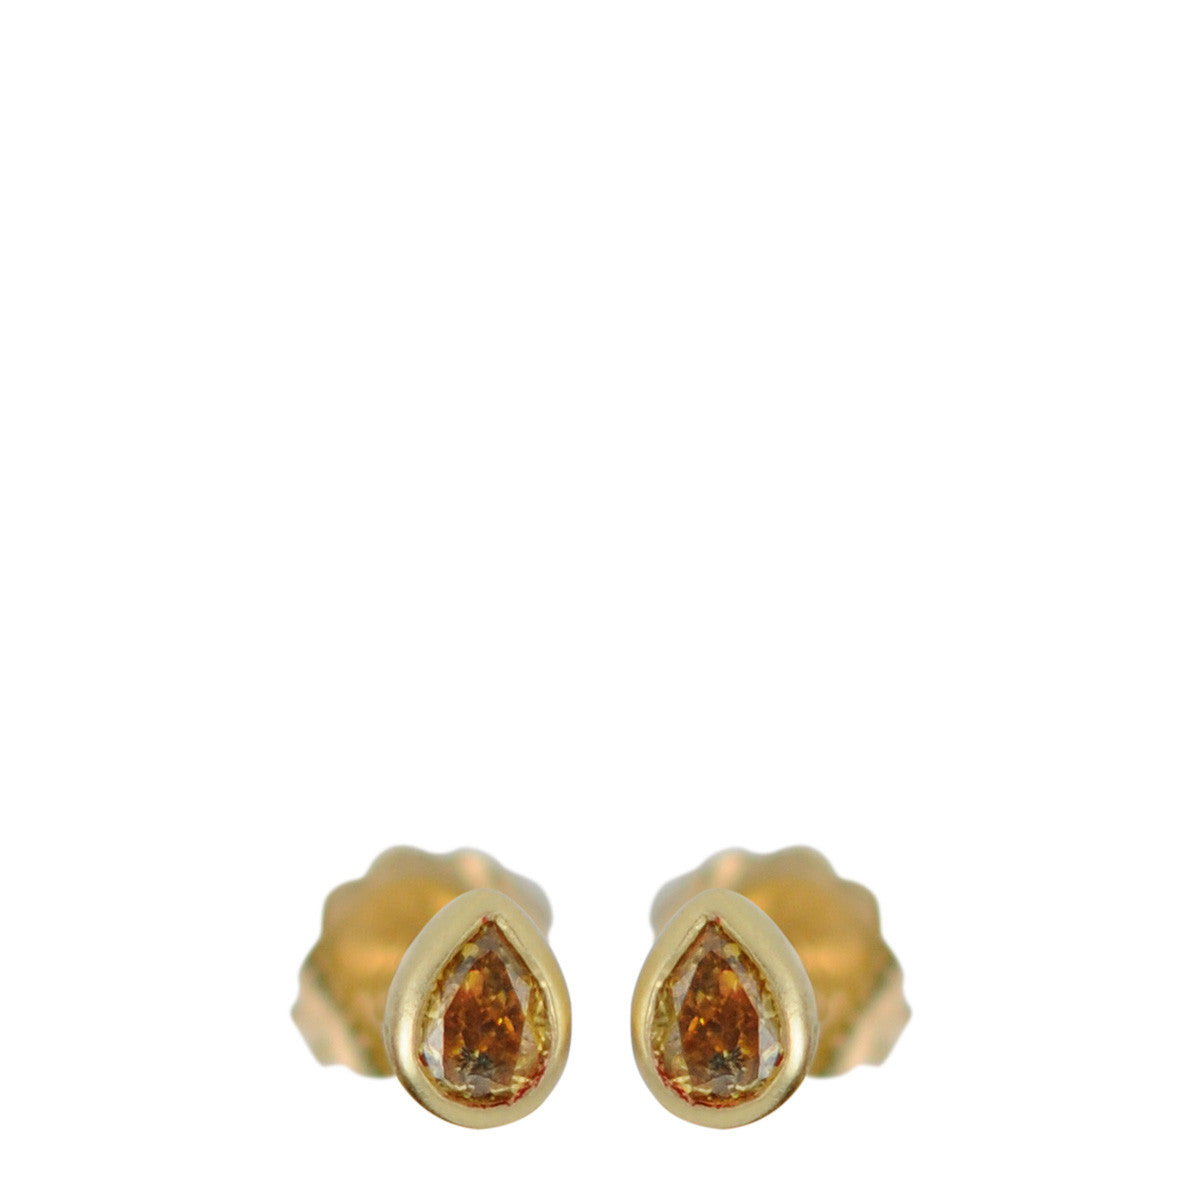 18K Gold Fancy Colored Teardrop Studs